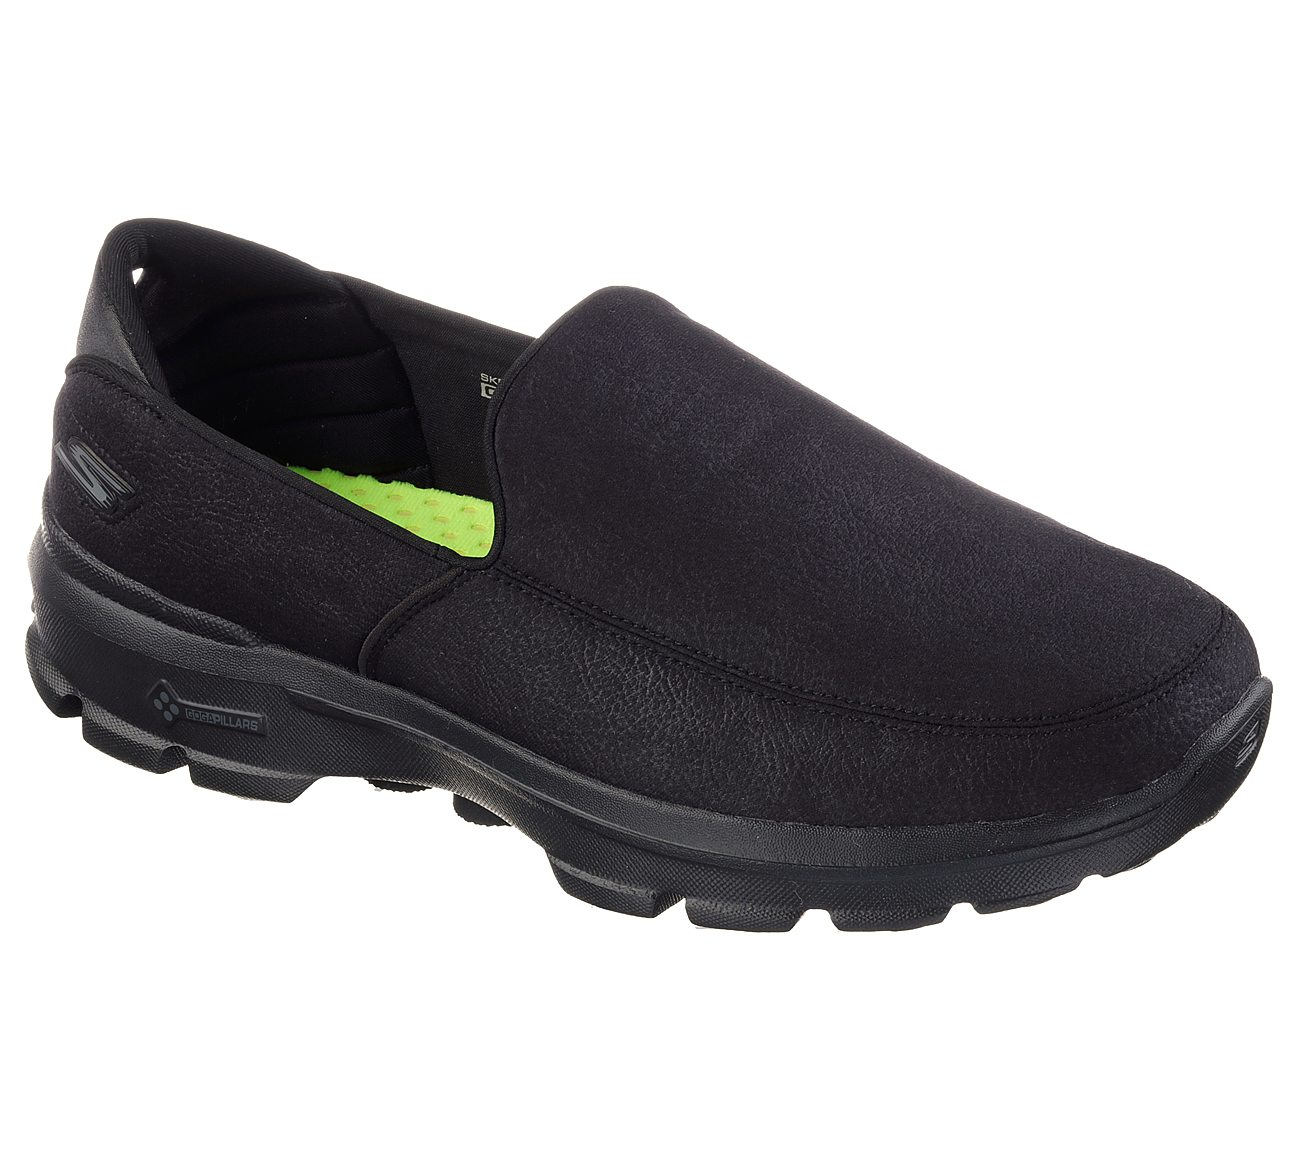 Buy SKECHERS Skechers GOwalk 3 LT